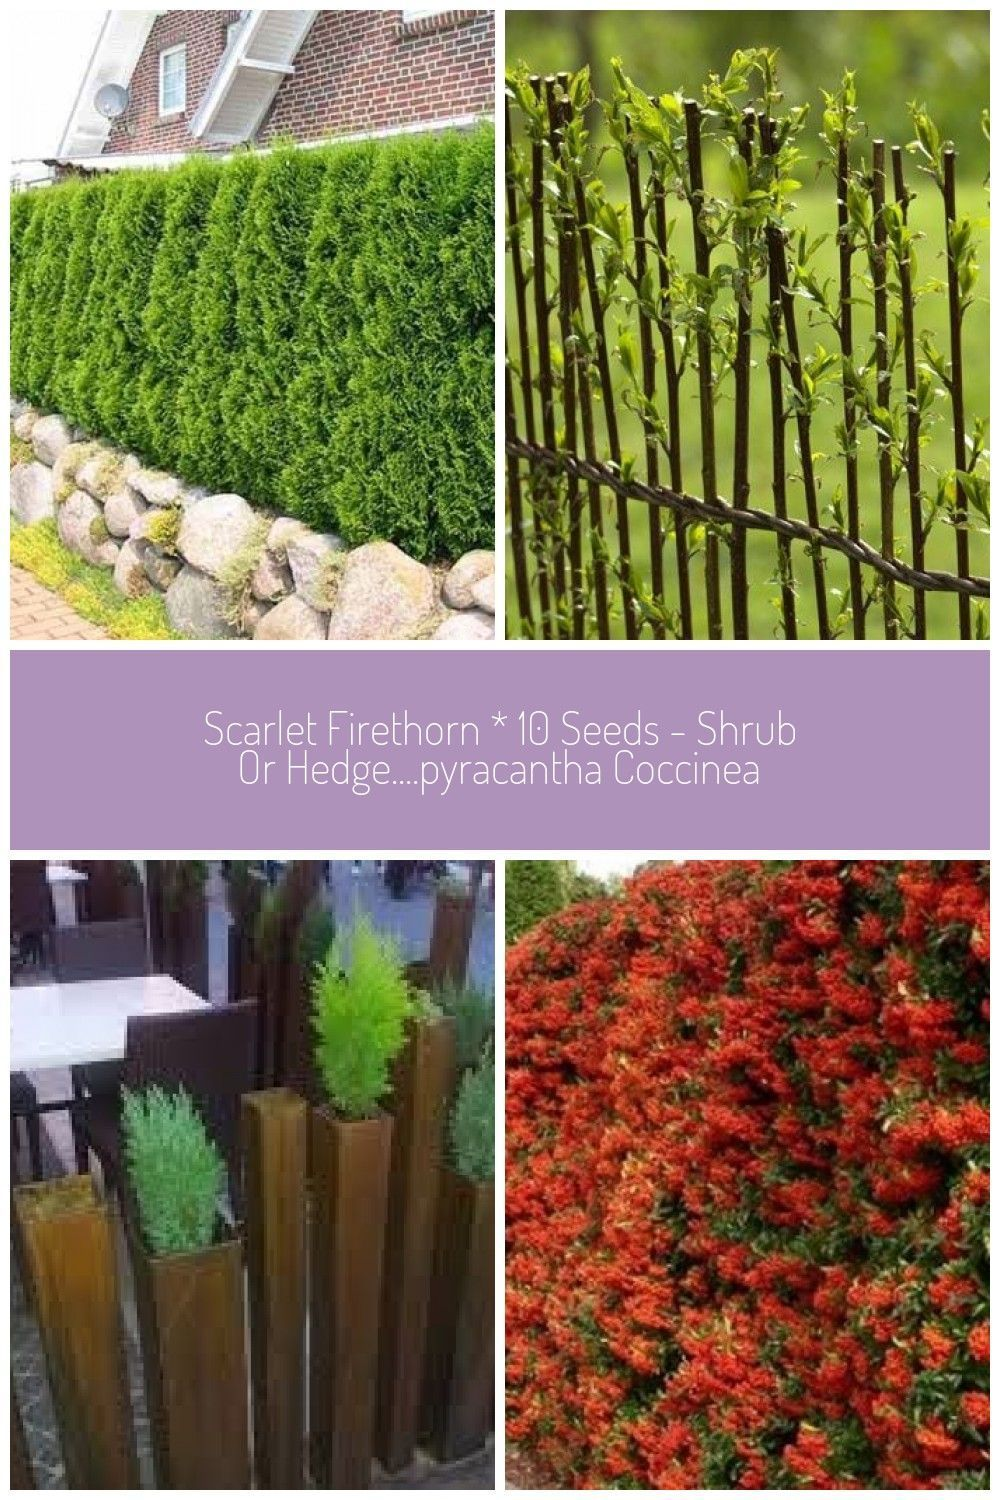 Green Fence Hedge Climbing Plants Trees Shrubs Ideas Natural Stone Garden Wall Green Fence Hedge Climbing P In 2020 Trees To Plant Climbing Plants Green Fence